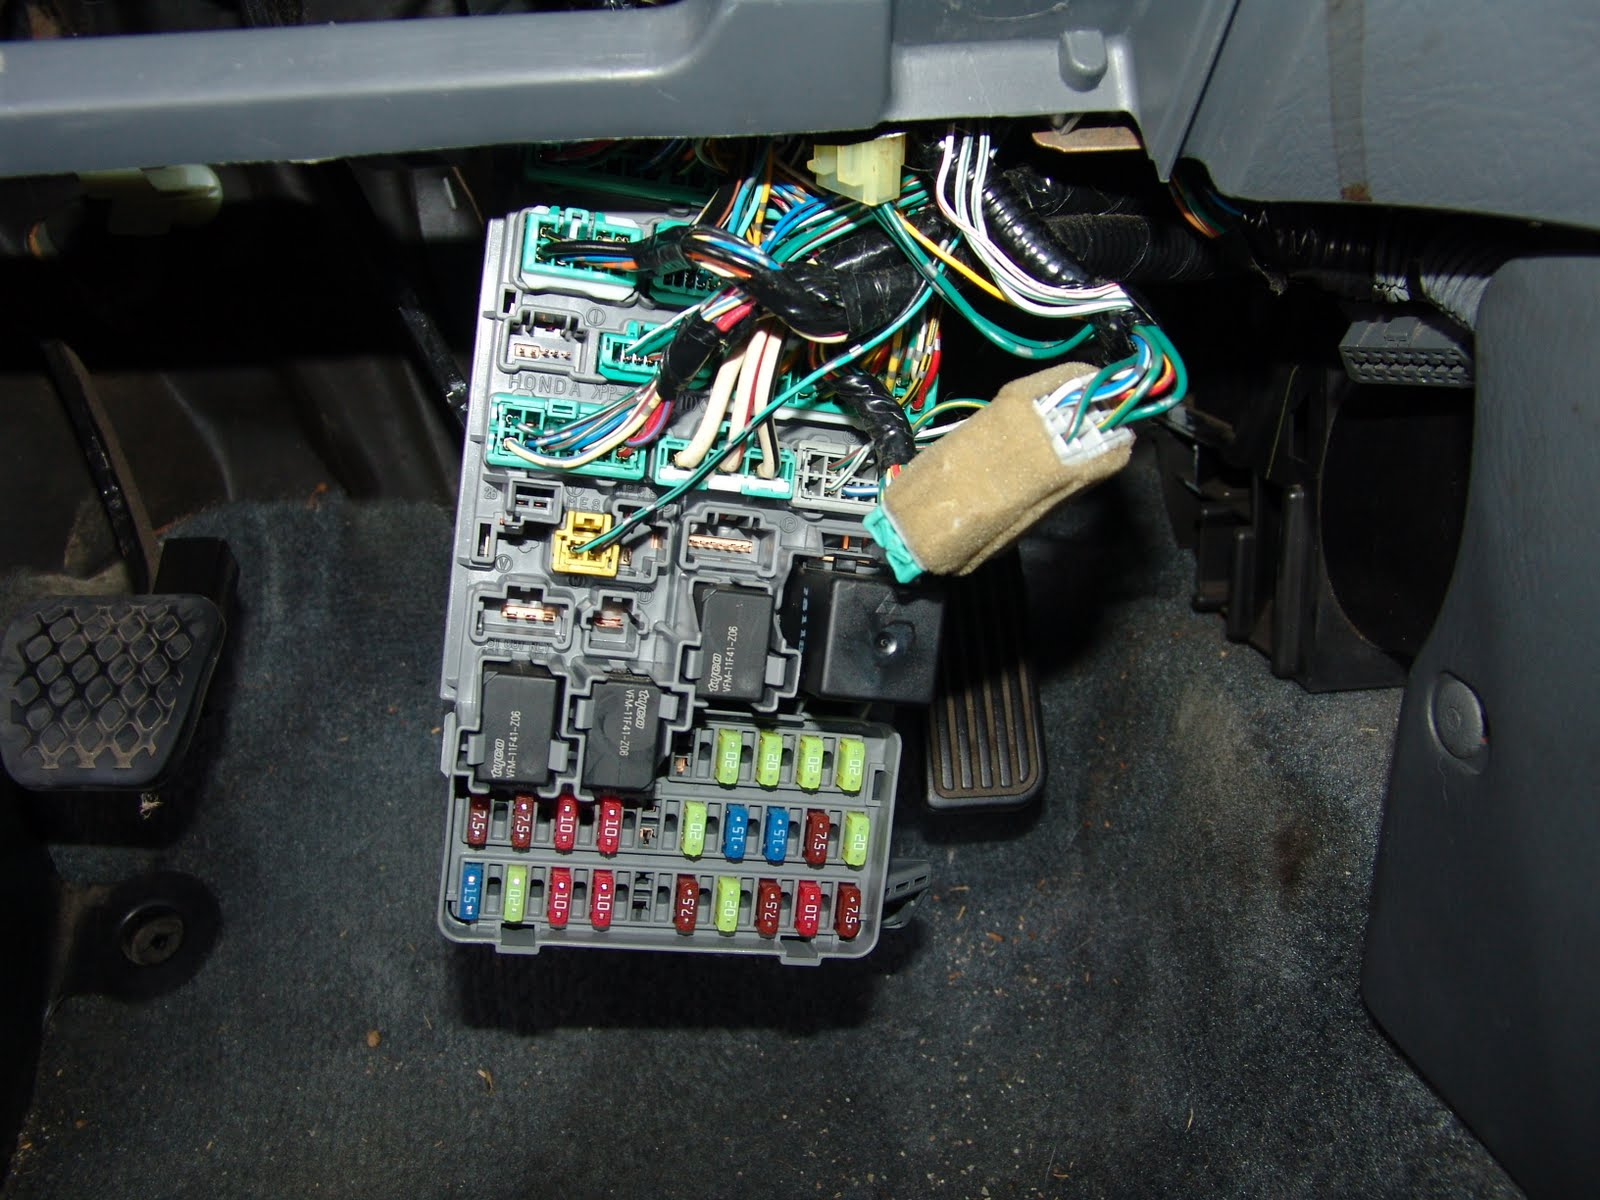 2006 Civic Fuse Box Diagram Honda Drl Great Design Of Wiring Obd Location Get Free Image About